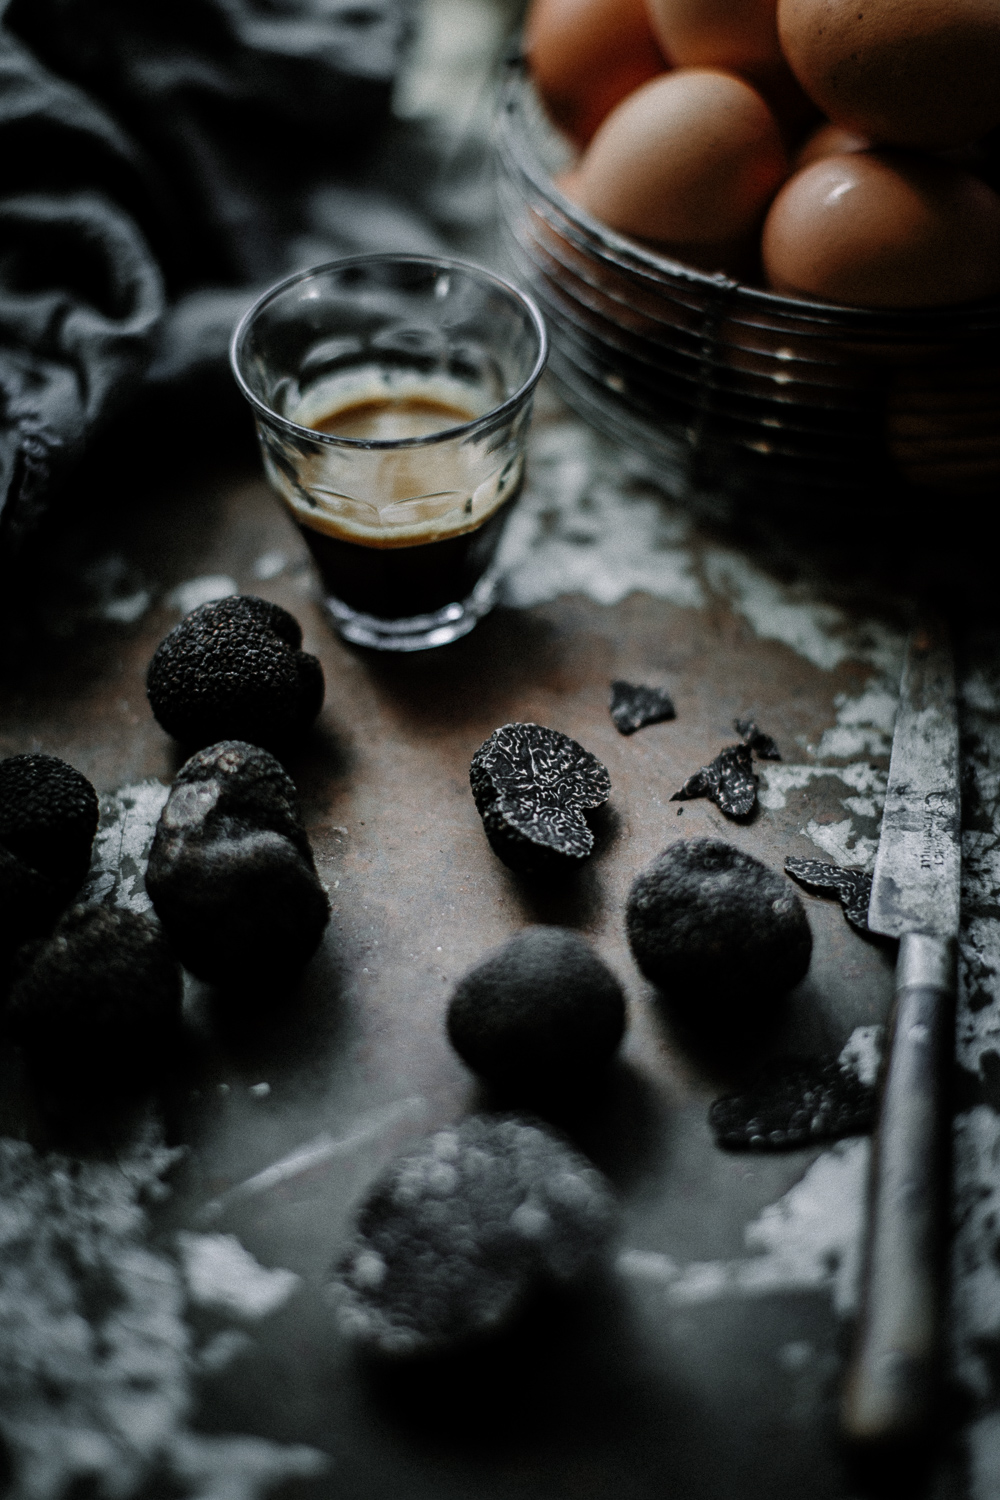 The-Truffle-Farm-Anisa-Sabet-The-Macadames-Food-Travel-Lifestyle-Photographer-4526